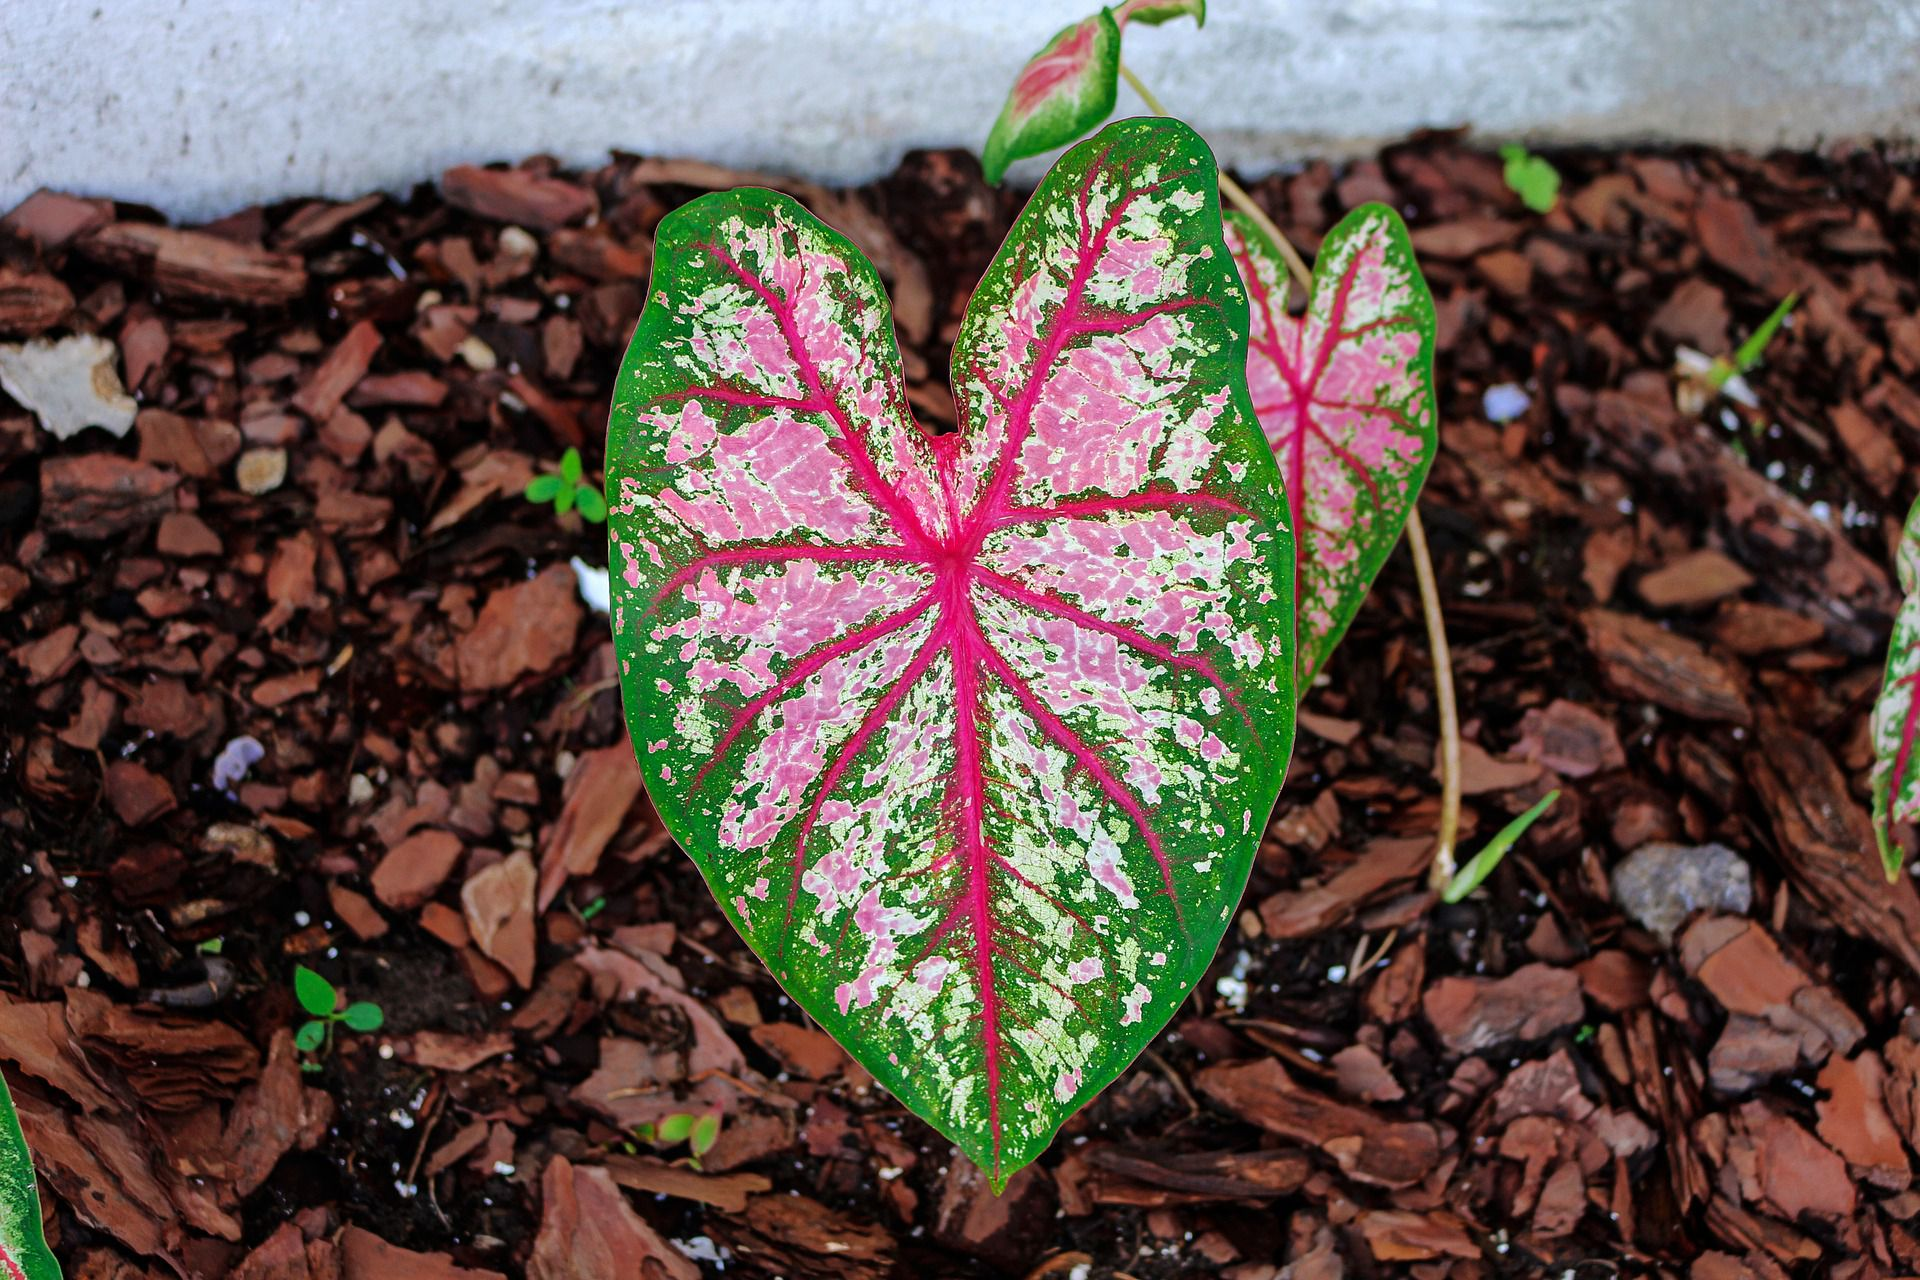 How To Grow Caladium As A Houseplant